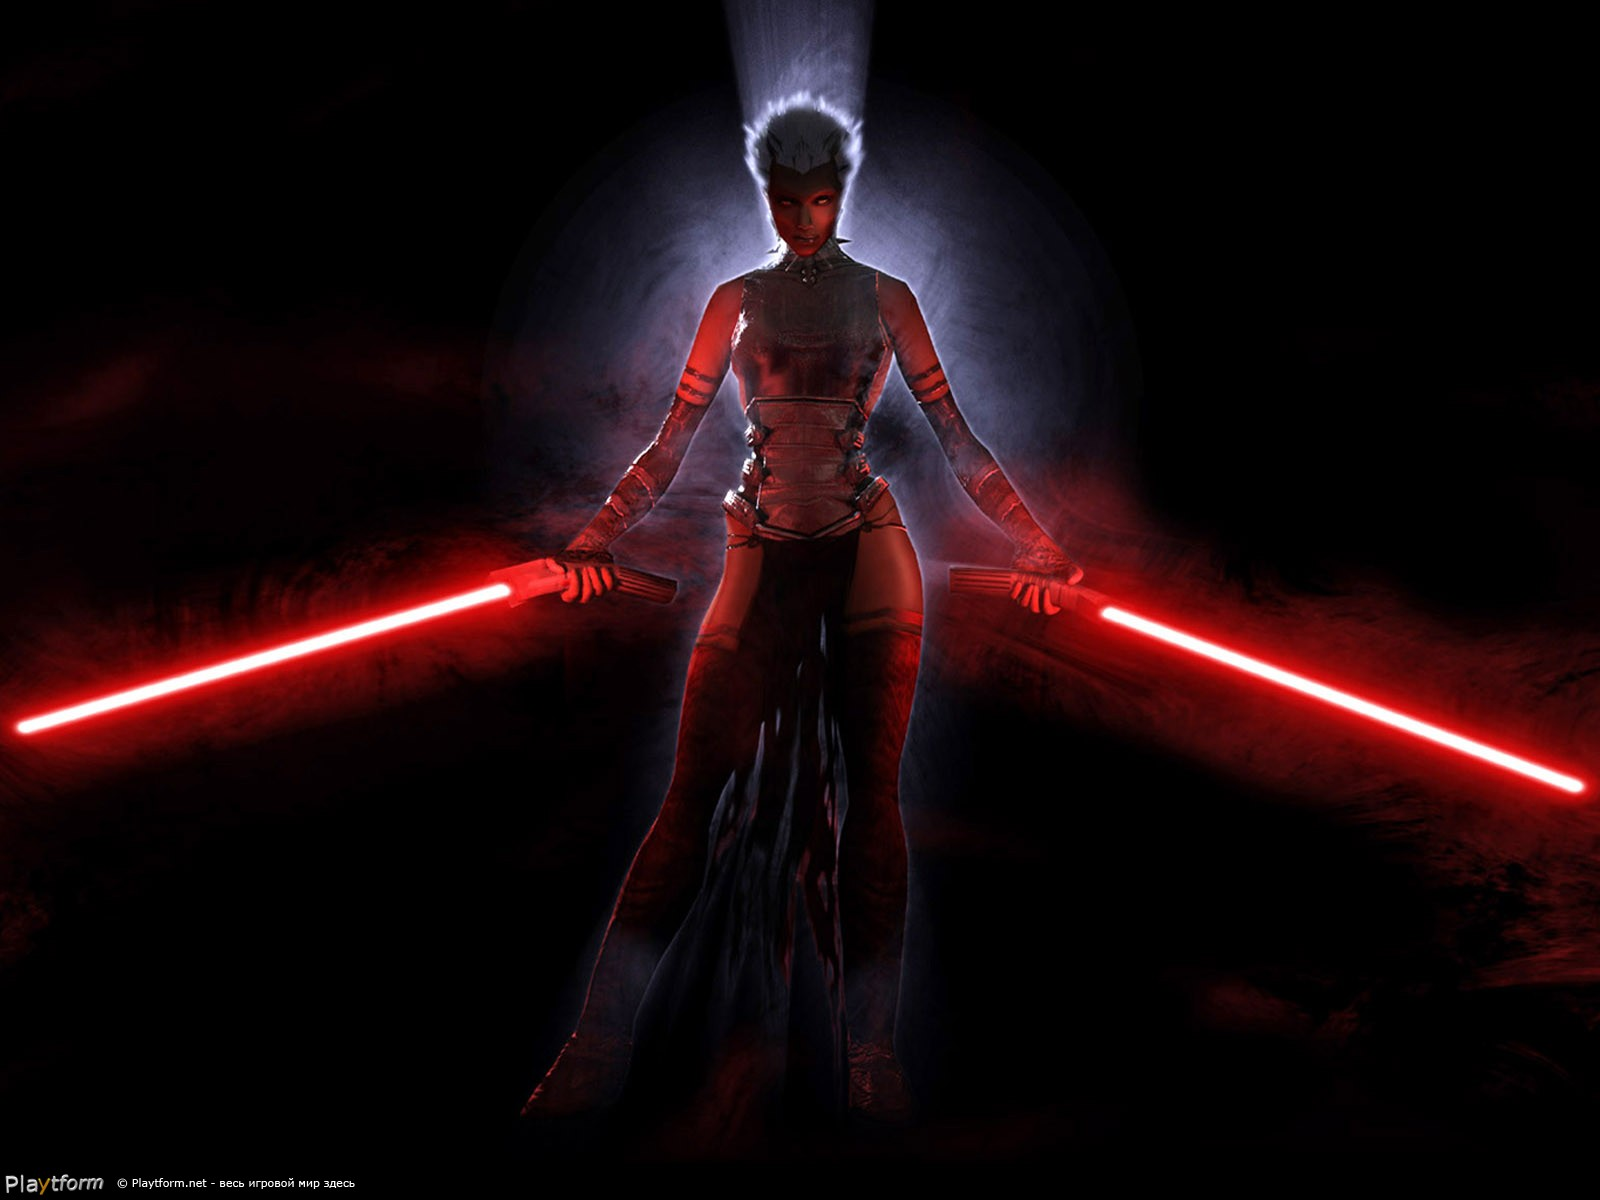 Sci Fi - Star Wars  Sith Wallpaper